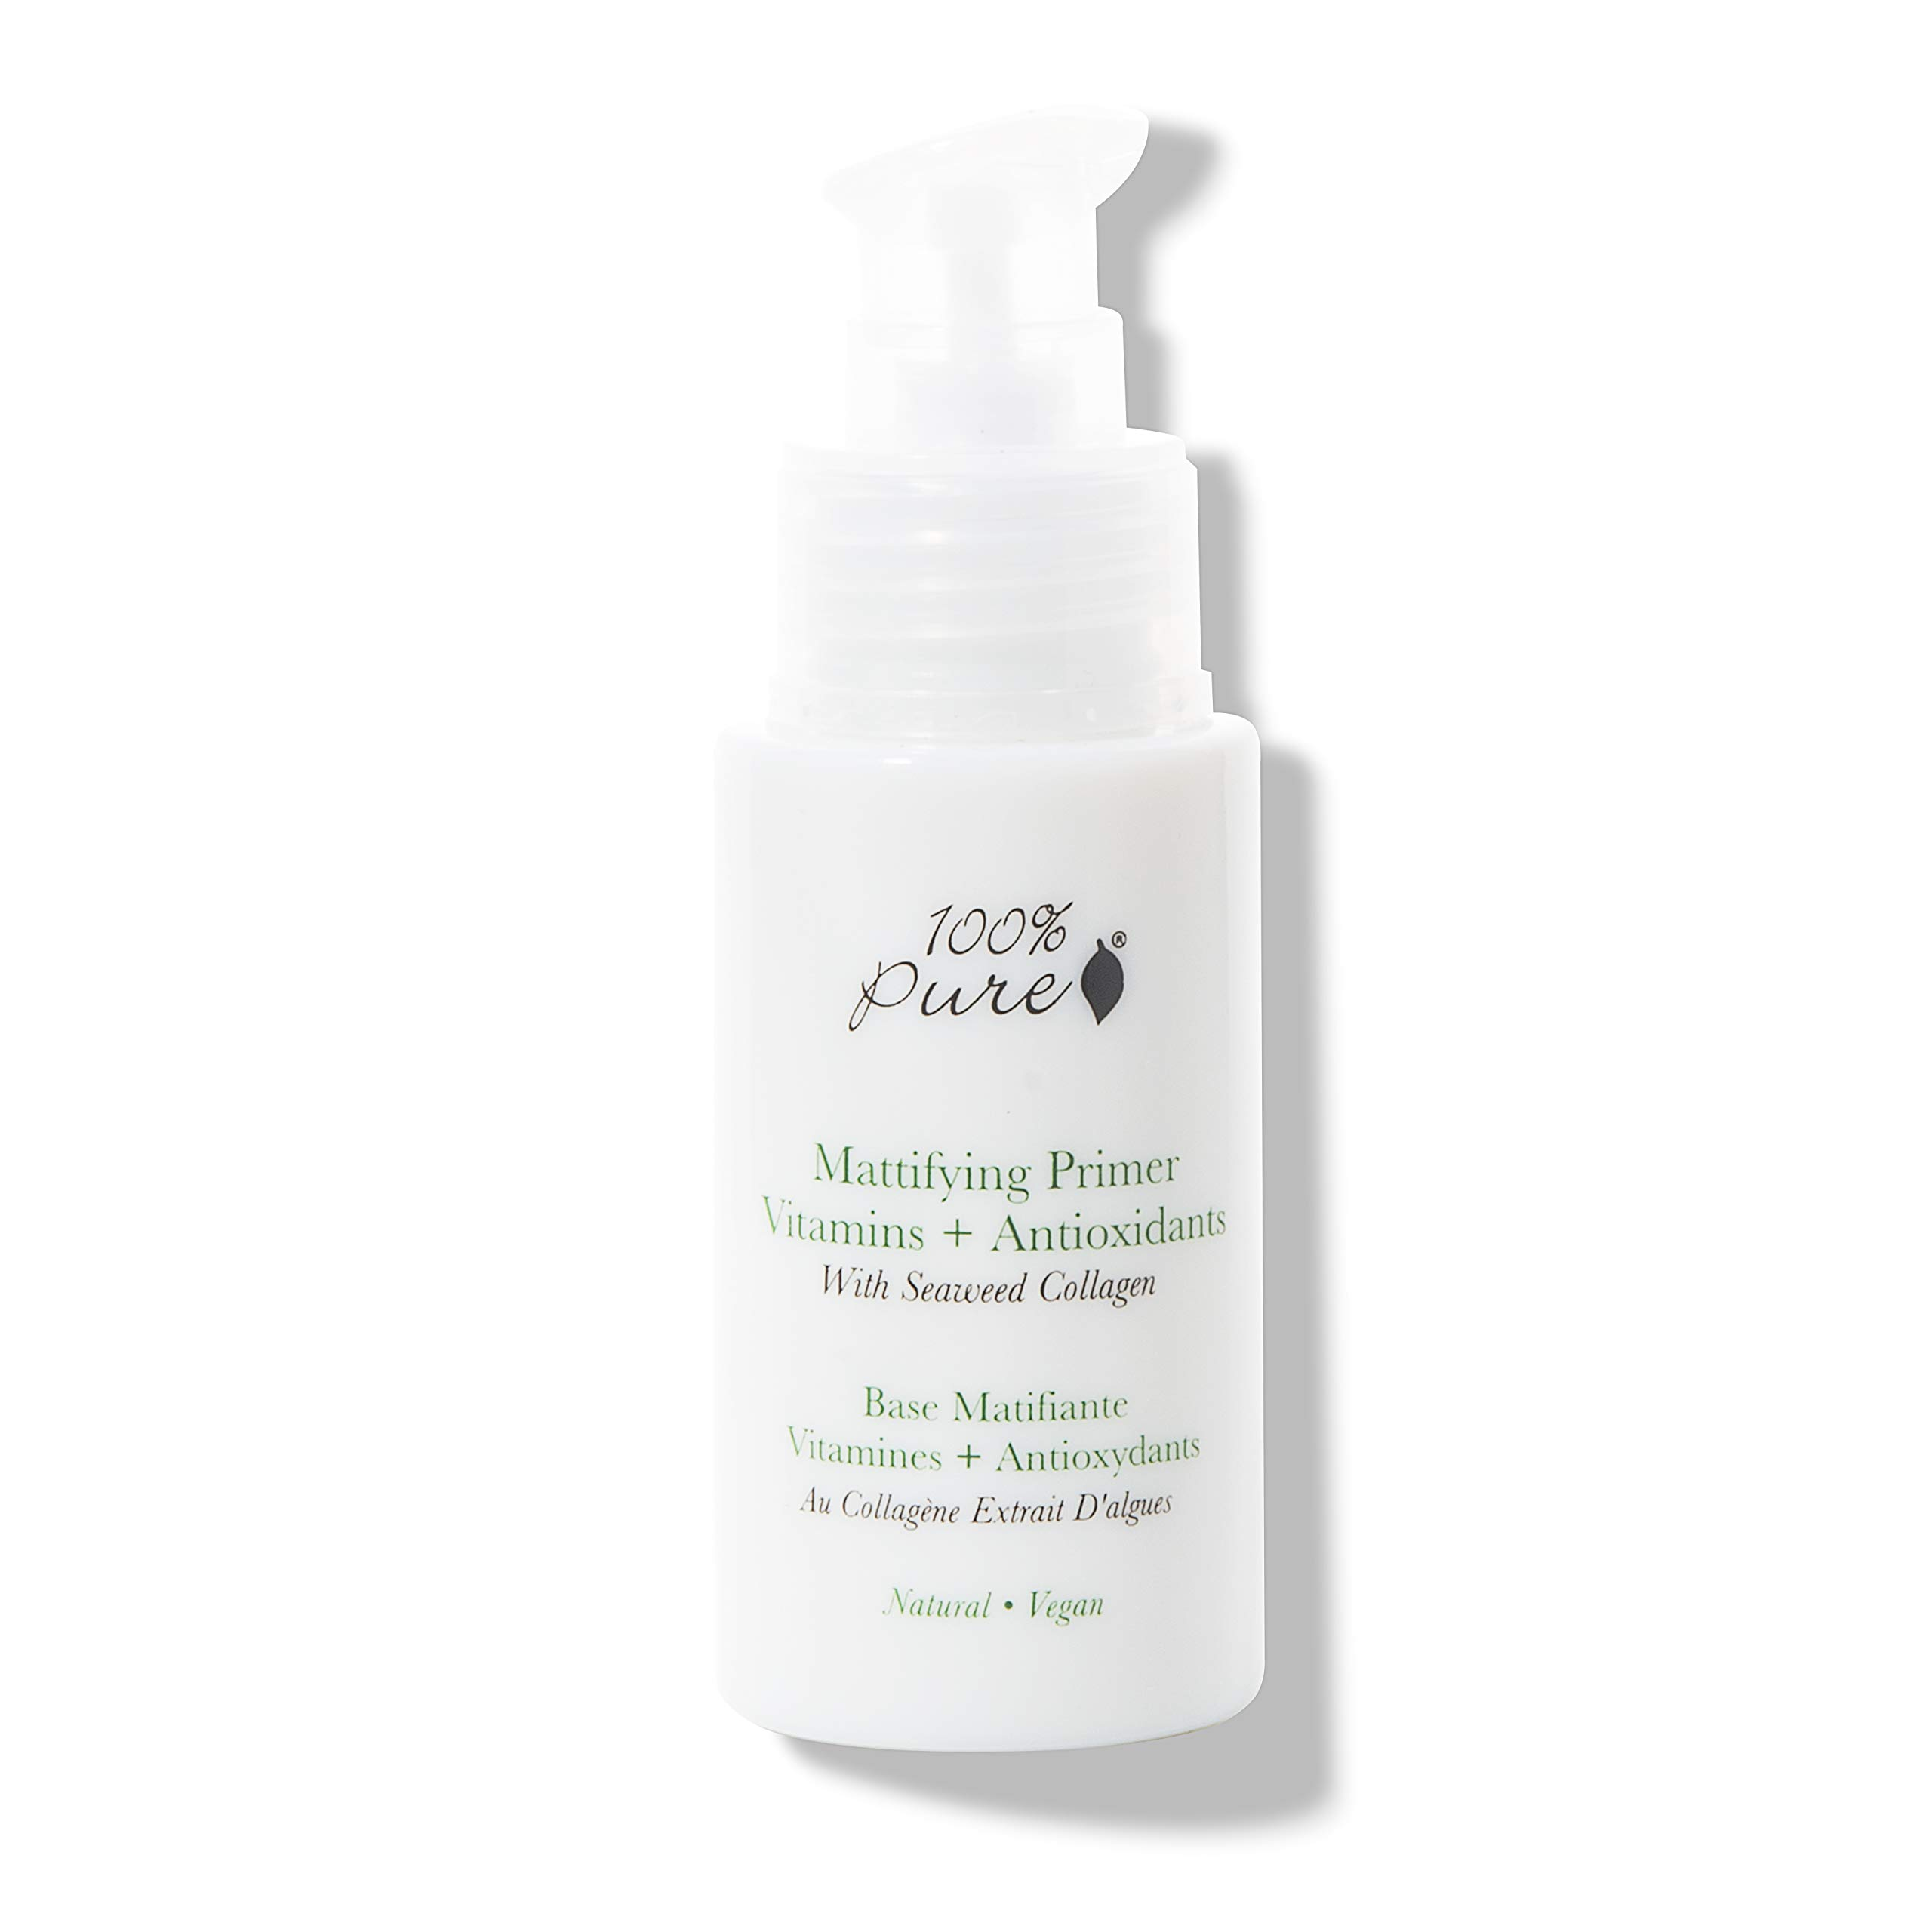 100% PURE Mattifying Primer, 1 oz, Silicone-Free Makeup Primer, Oil-Free, Shine-Free, For Flawless, Long-Lasting Foundation, Poreless Finish, Face Primer that hydrates and brightens